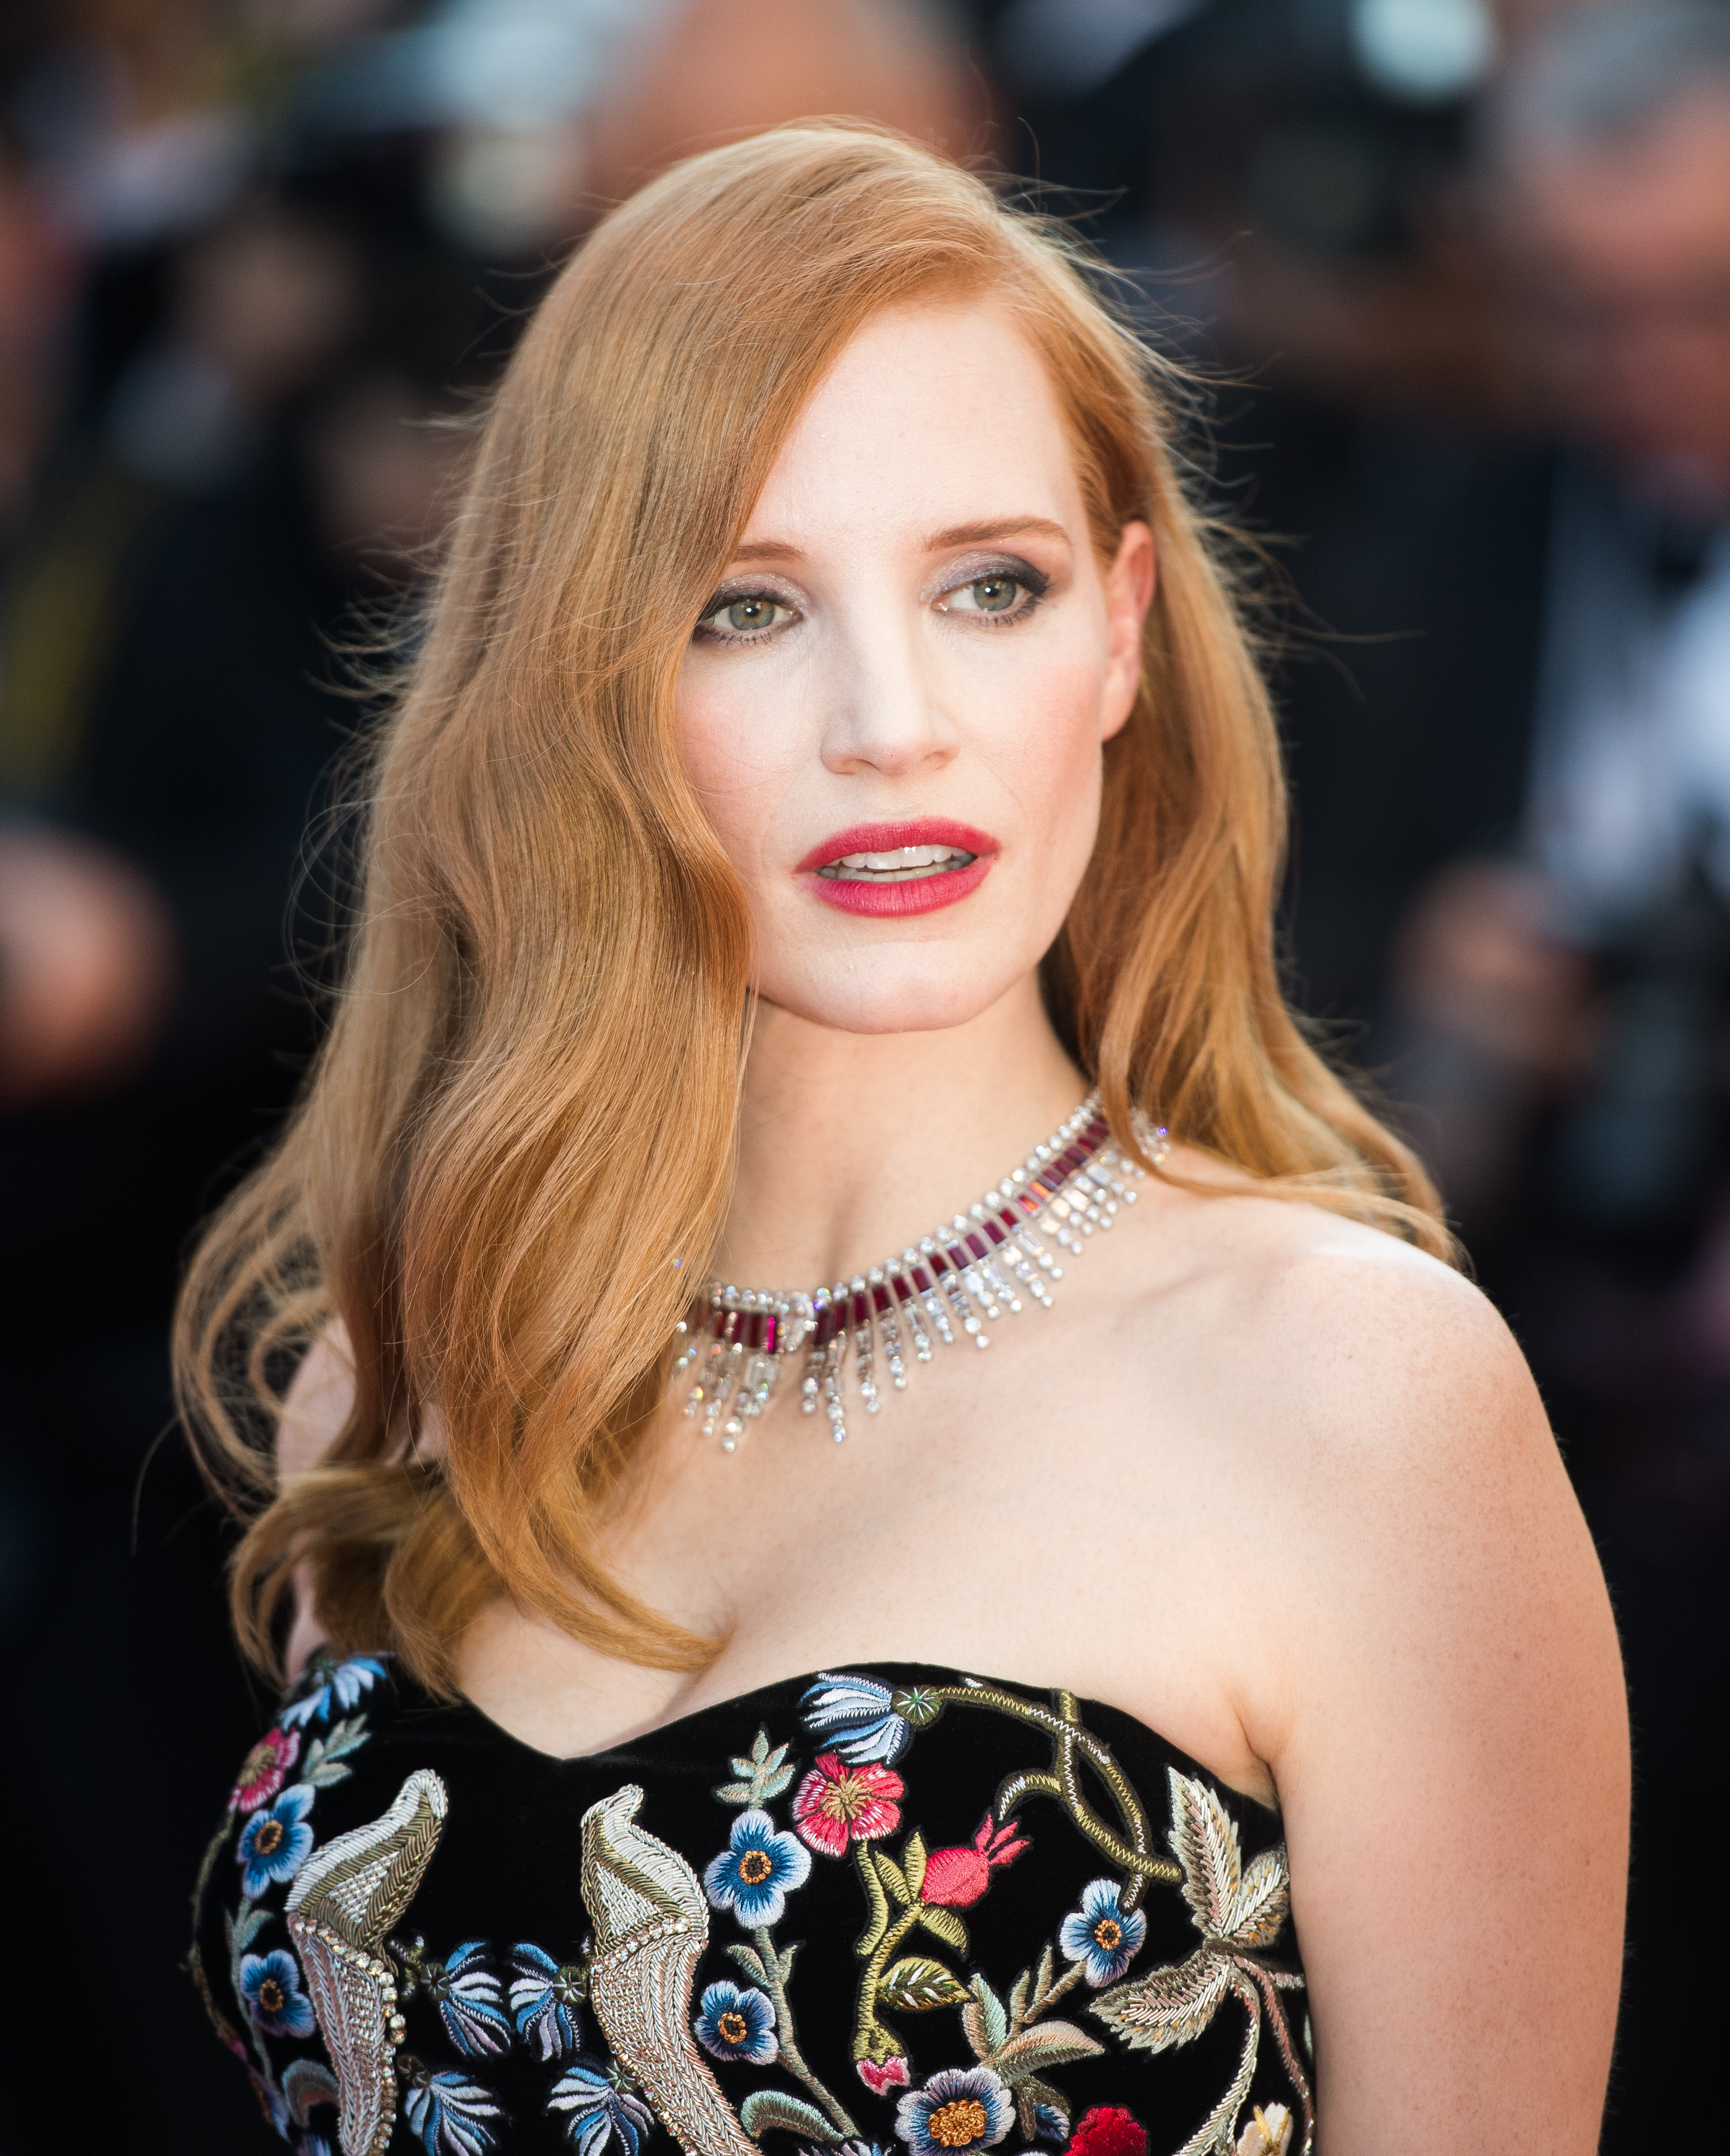 "<p>Actress Jessica Chastain made a show-stopping entrance on the opening night of the<a href=""http://style.nine.com.au/2017/05/18/09/09/style_cannes-red-carpet-arrivals-2017"" target=""_blank"" draggable=""false""> 70th Cannes Film Festival</a>, in a Gothic-inspired Alexander McQueen gown. </p> <p>Despite the striking detail on her designer dress, it was the actress's bright red lips, tousled waves and soft smokey eye makeup that drew just as much attention.</p> <p>The acclaimed film festival is one of the most glamorous  red carpet events of the year, and brings a mixture of A-lister's to the captivating French town for a week of film, fashion and most importantly beauty. </p> <p>From Uma Thurman's sleek short haircut to Lily-Rose Depp's Grecian- inspired look, this year's Cannes red carpet has more than delivered an array of dazzling beauty looks to be inspired by.</p> <p>Click through to see all the beauty highlight's from the 2017 Cannes Film Festival.</p>"